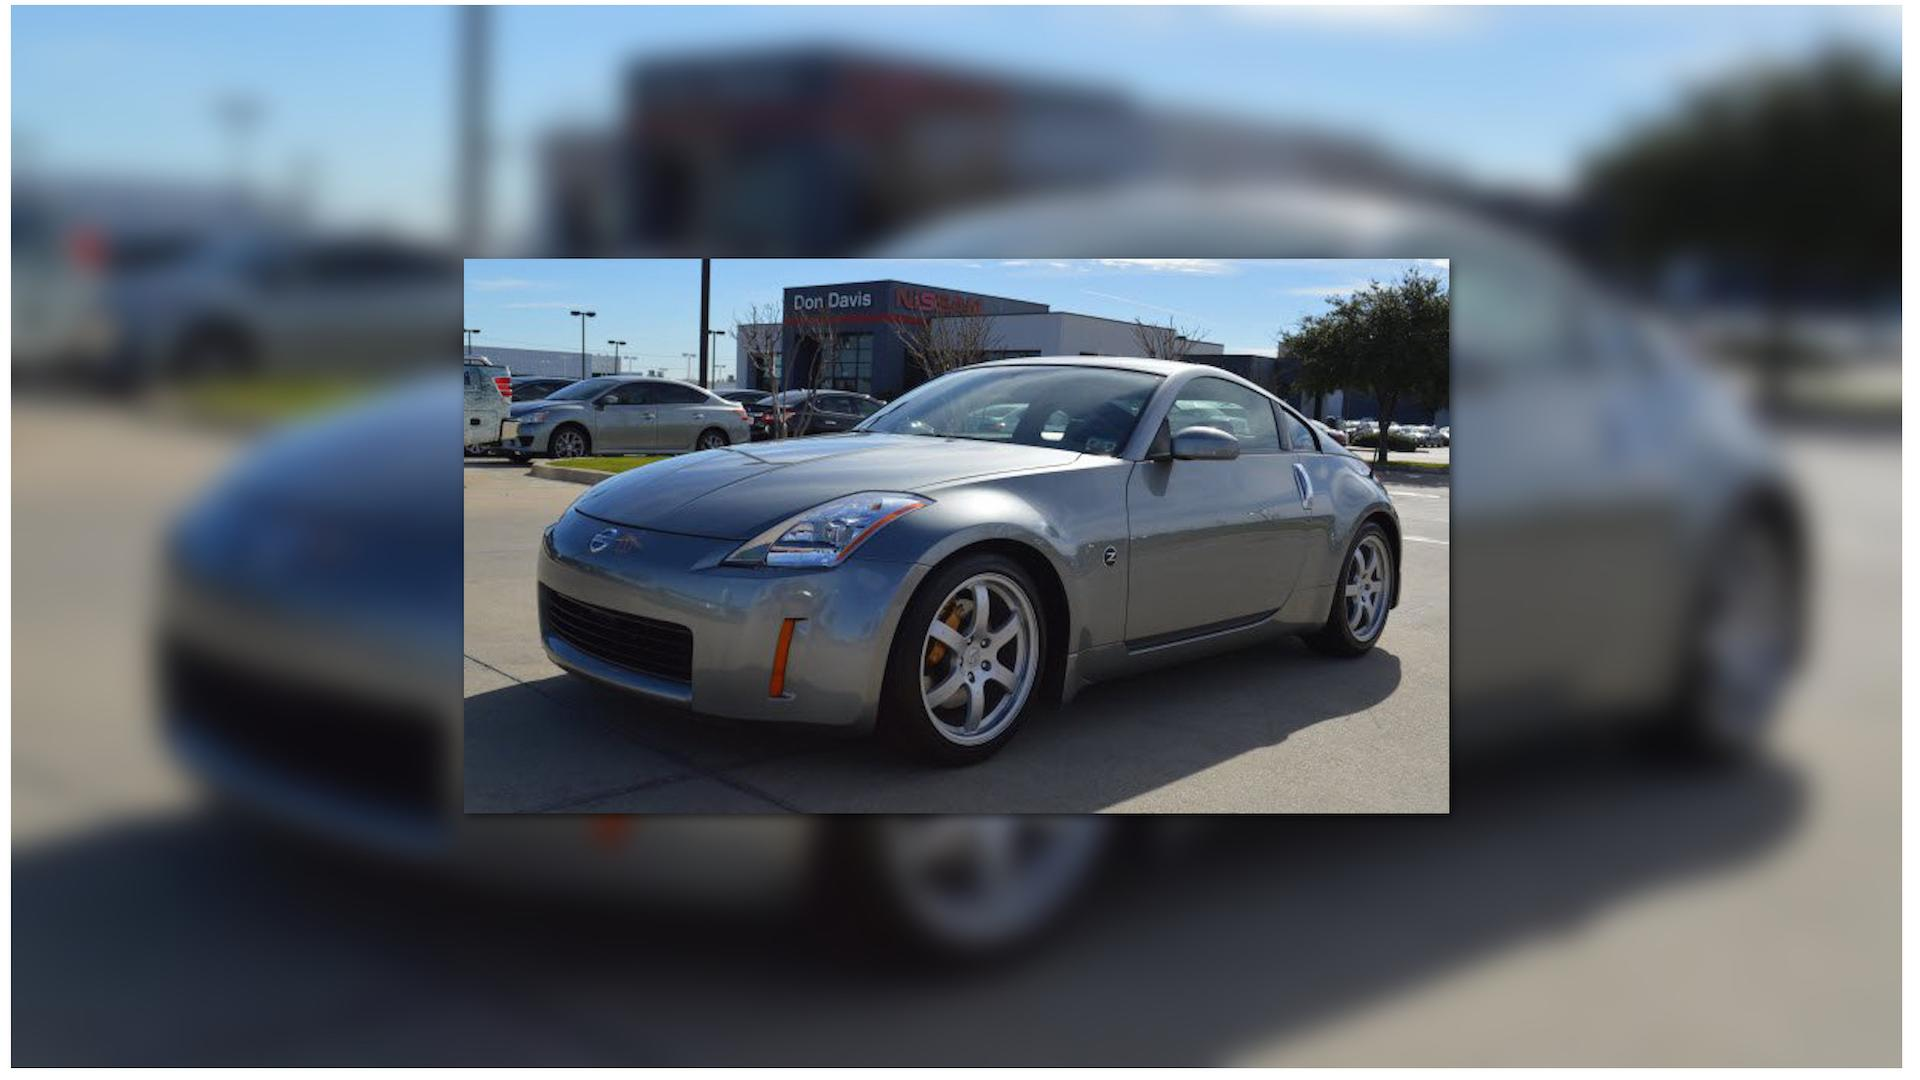 forum bhp test o initial z ownership team sale nissan for reports drives